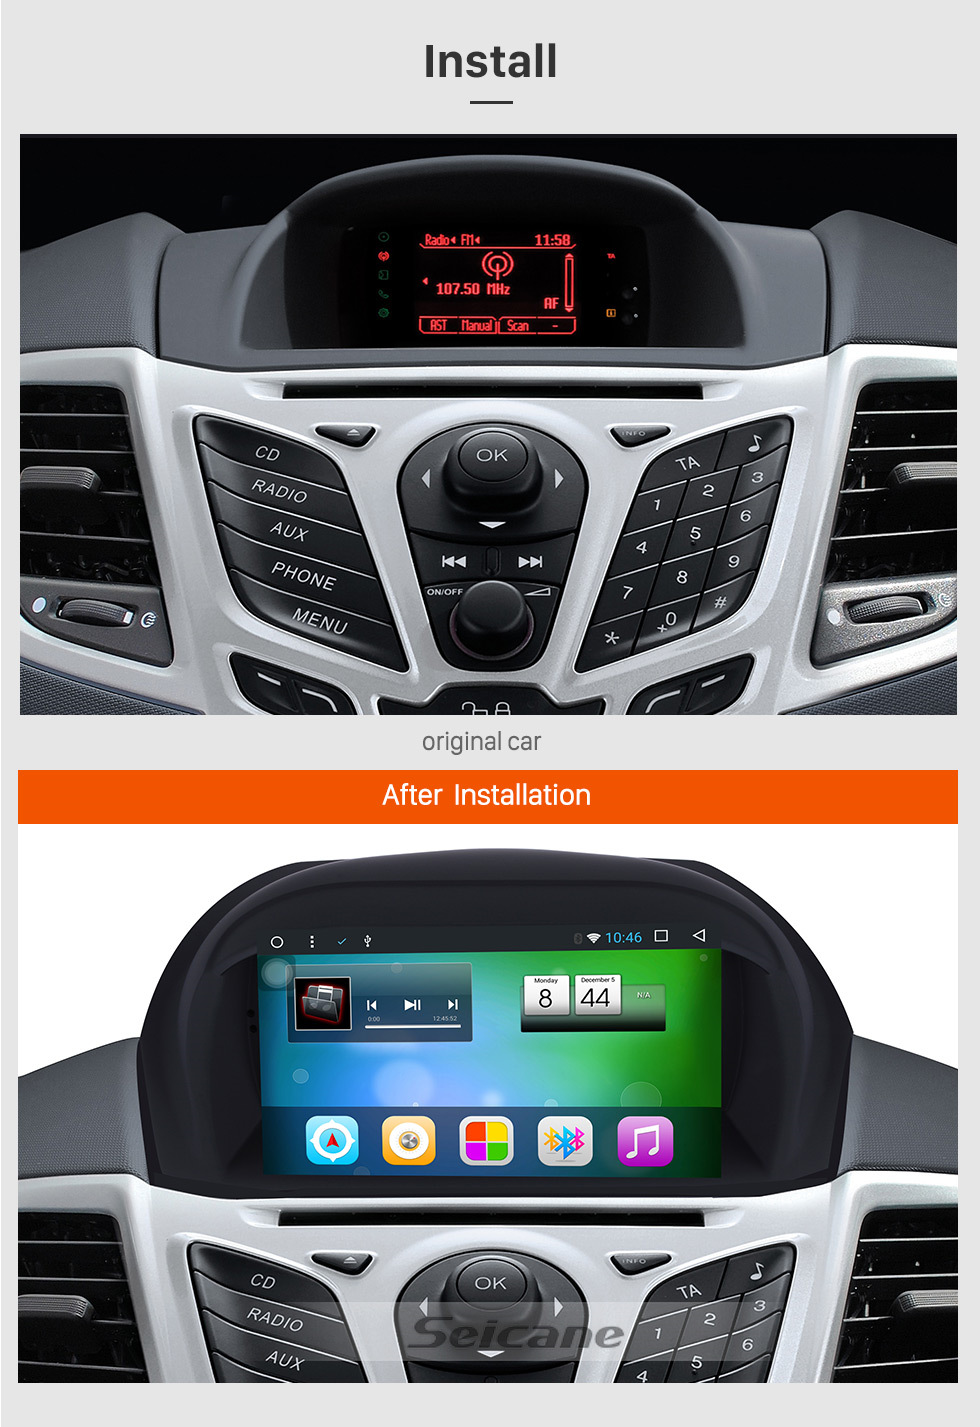 Seicane Aftermarket Radio Android 8.1 7 Inch HD Touchscreen DVD Player For 2009 2010 Ford Fiester Car Stereo GPS Navigation System Bluetooth Phone WIFI Support 1080P Video OBDII DVR Steering Wheel Control Mirror Link